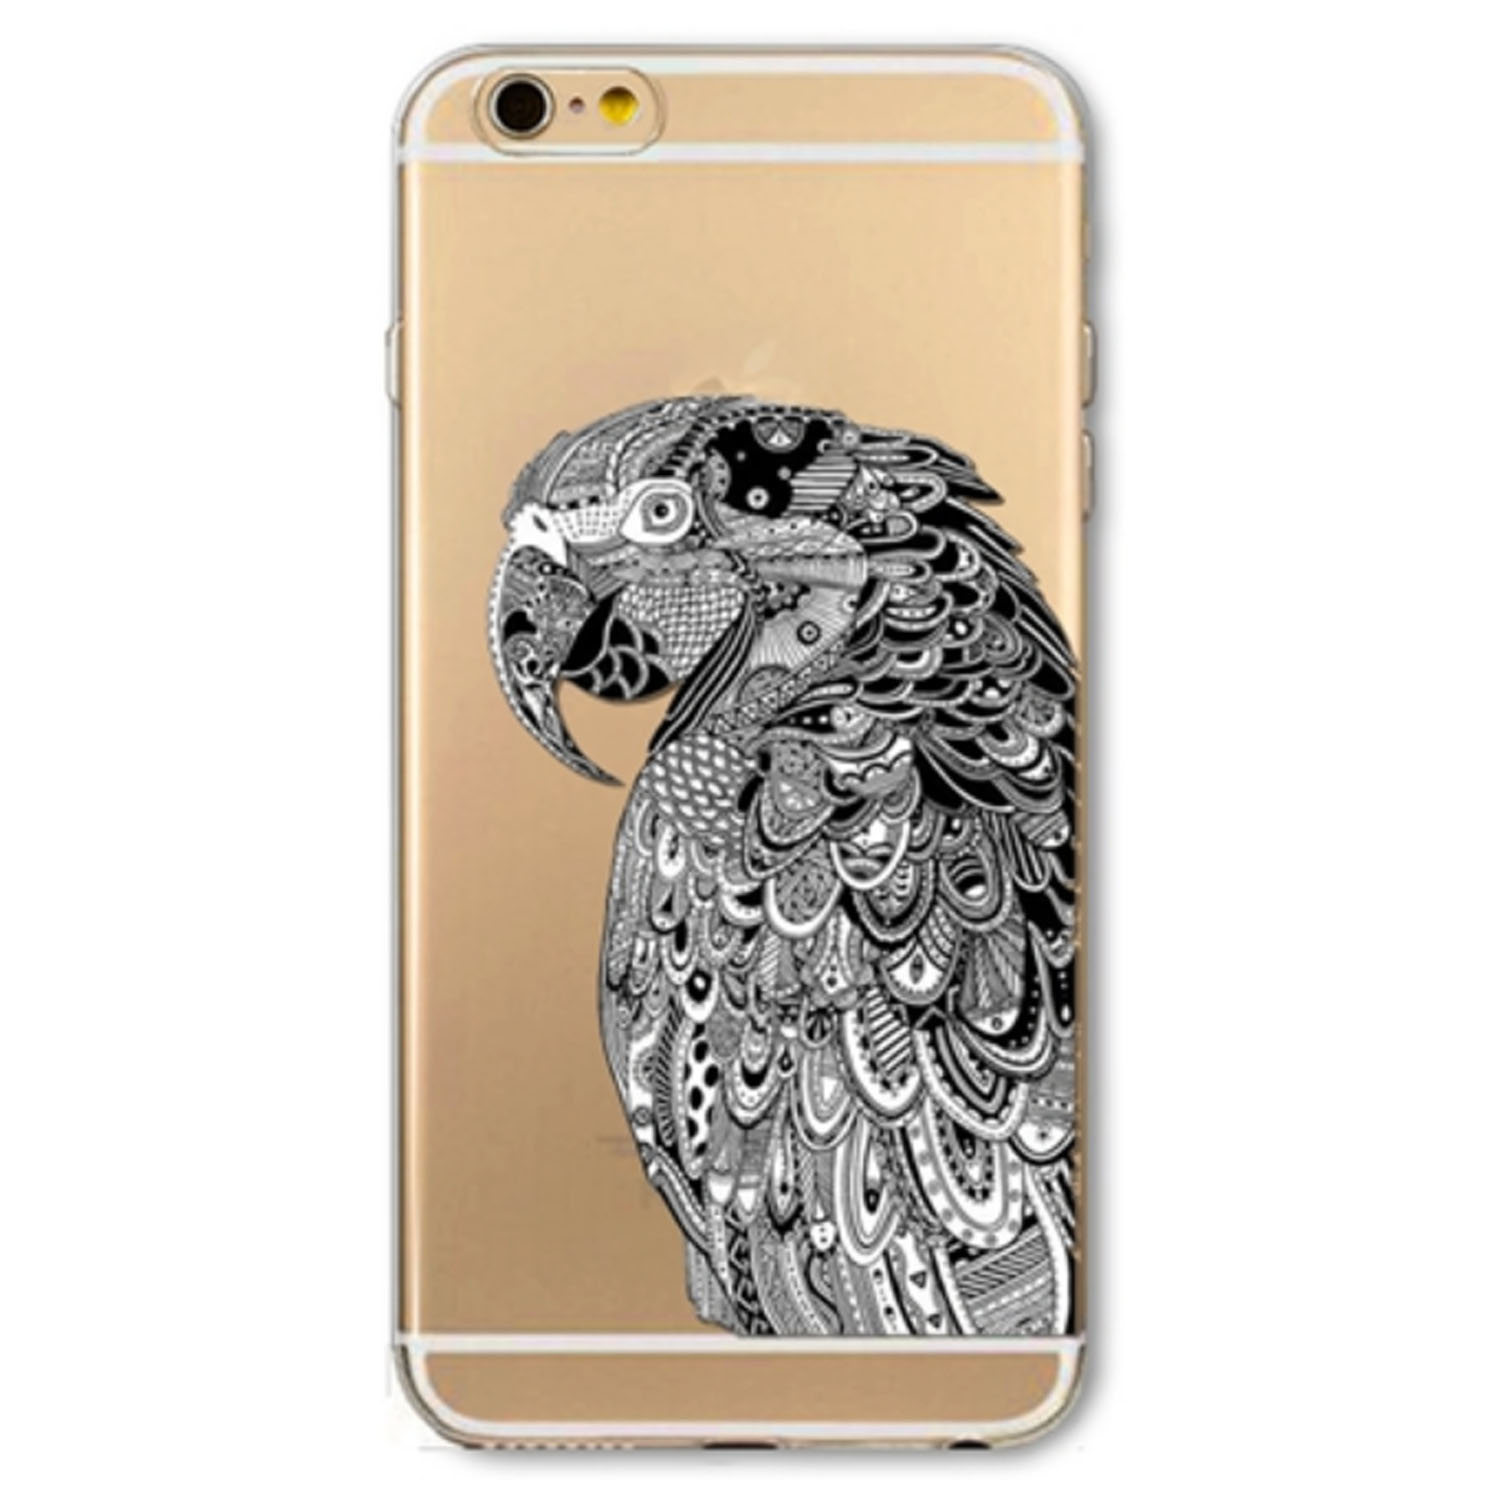 Kritzel Case Collection iPhone 6 plus / 6s plus - Mod. #468